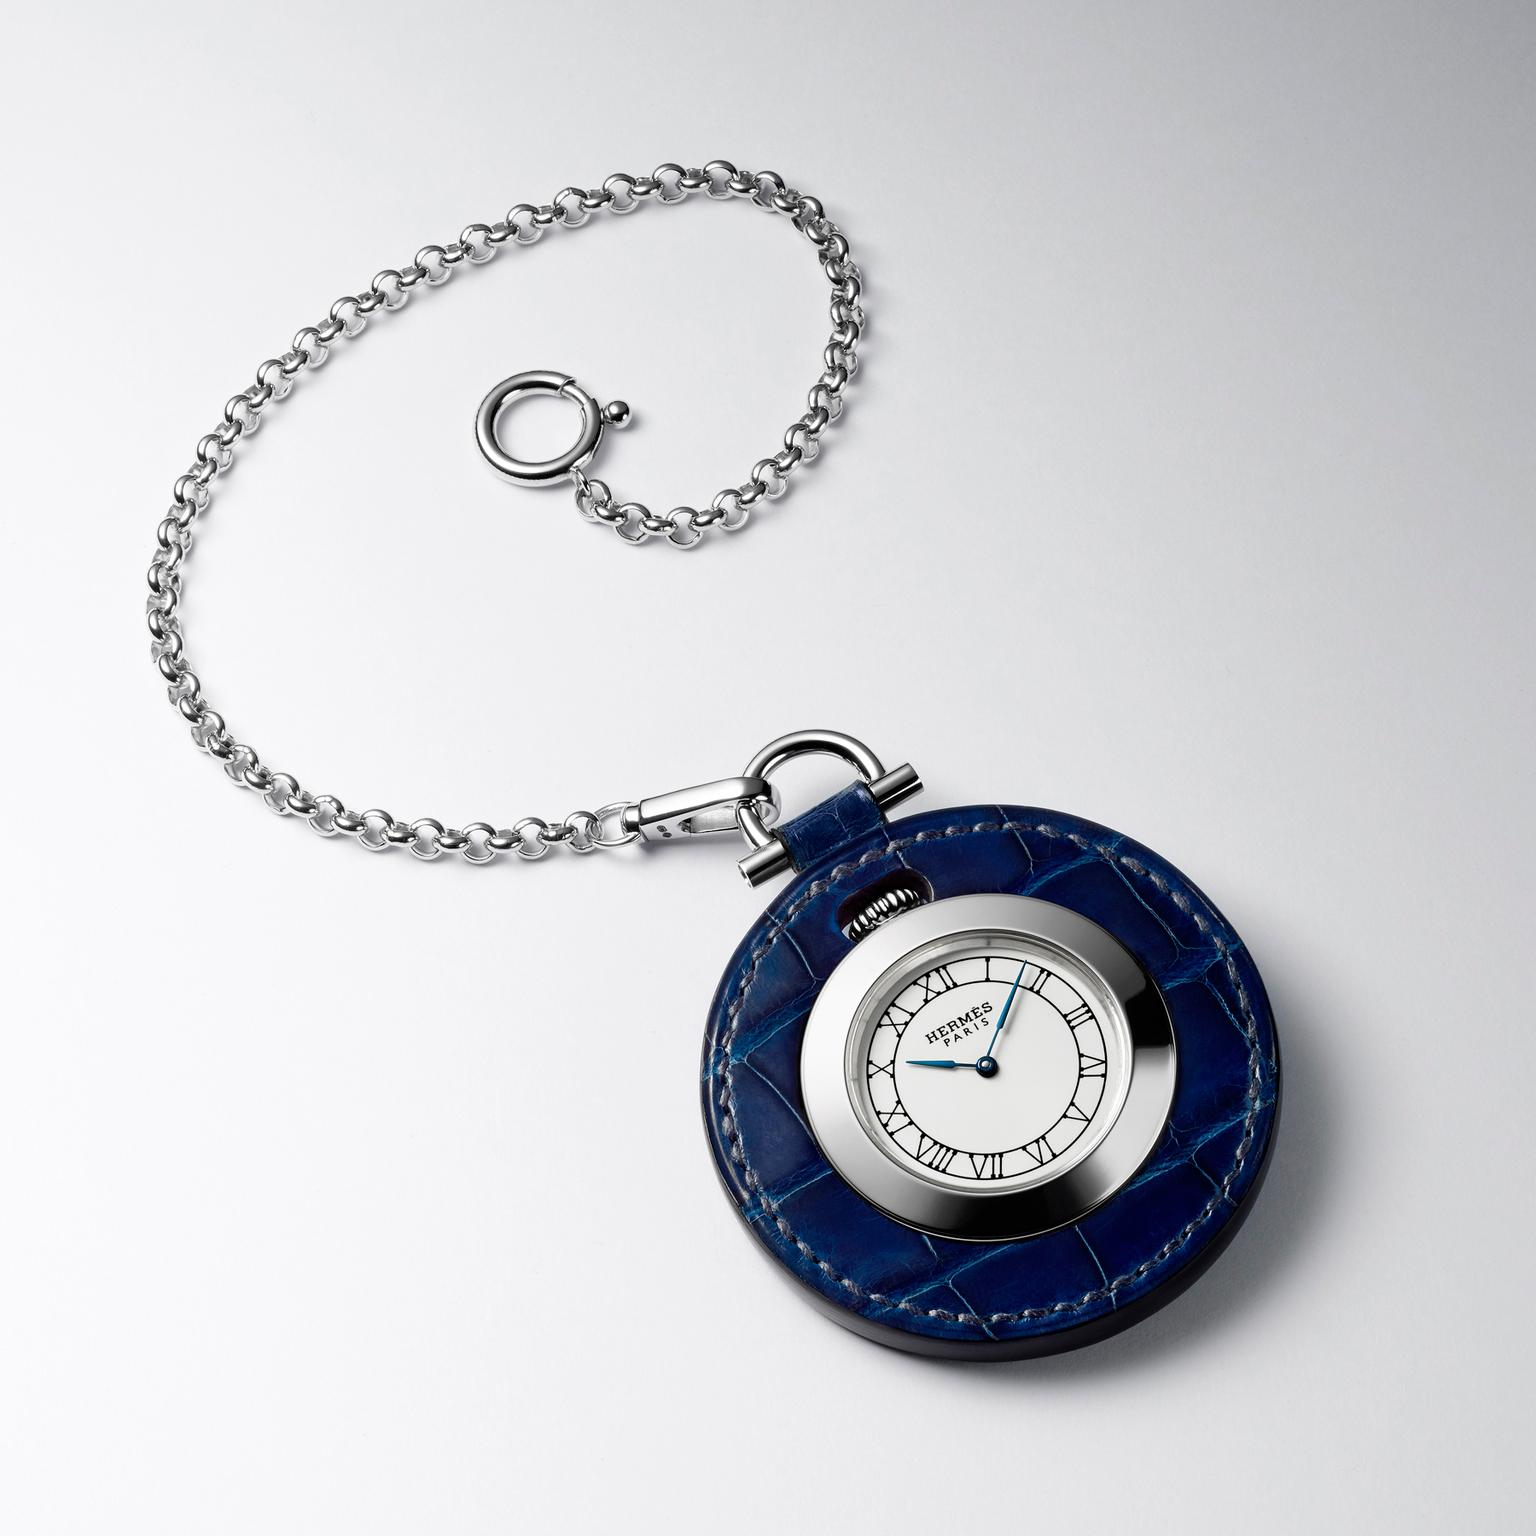 Hermès Pocket Plein Cuir pocket watch